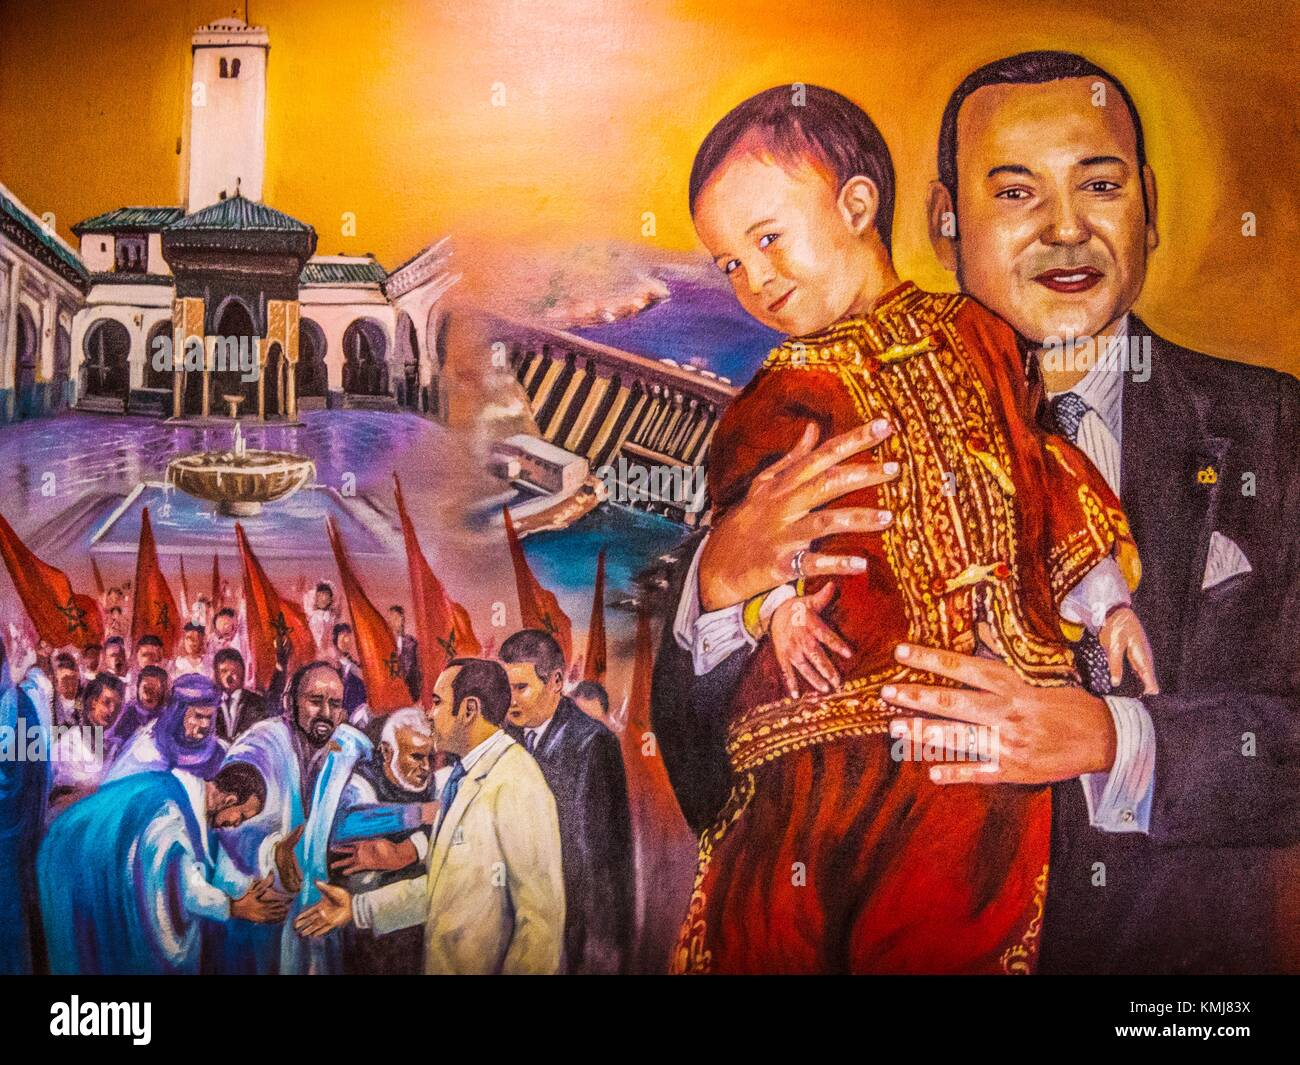 Morocco, Poster, representing King Mohamed VI and his son, meeting the moroccans, and giving culture (Karaouyne - Stock Image